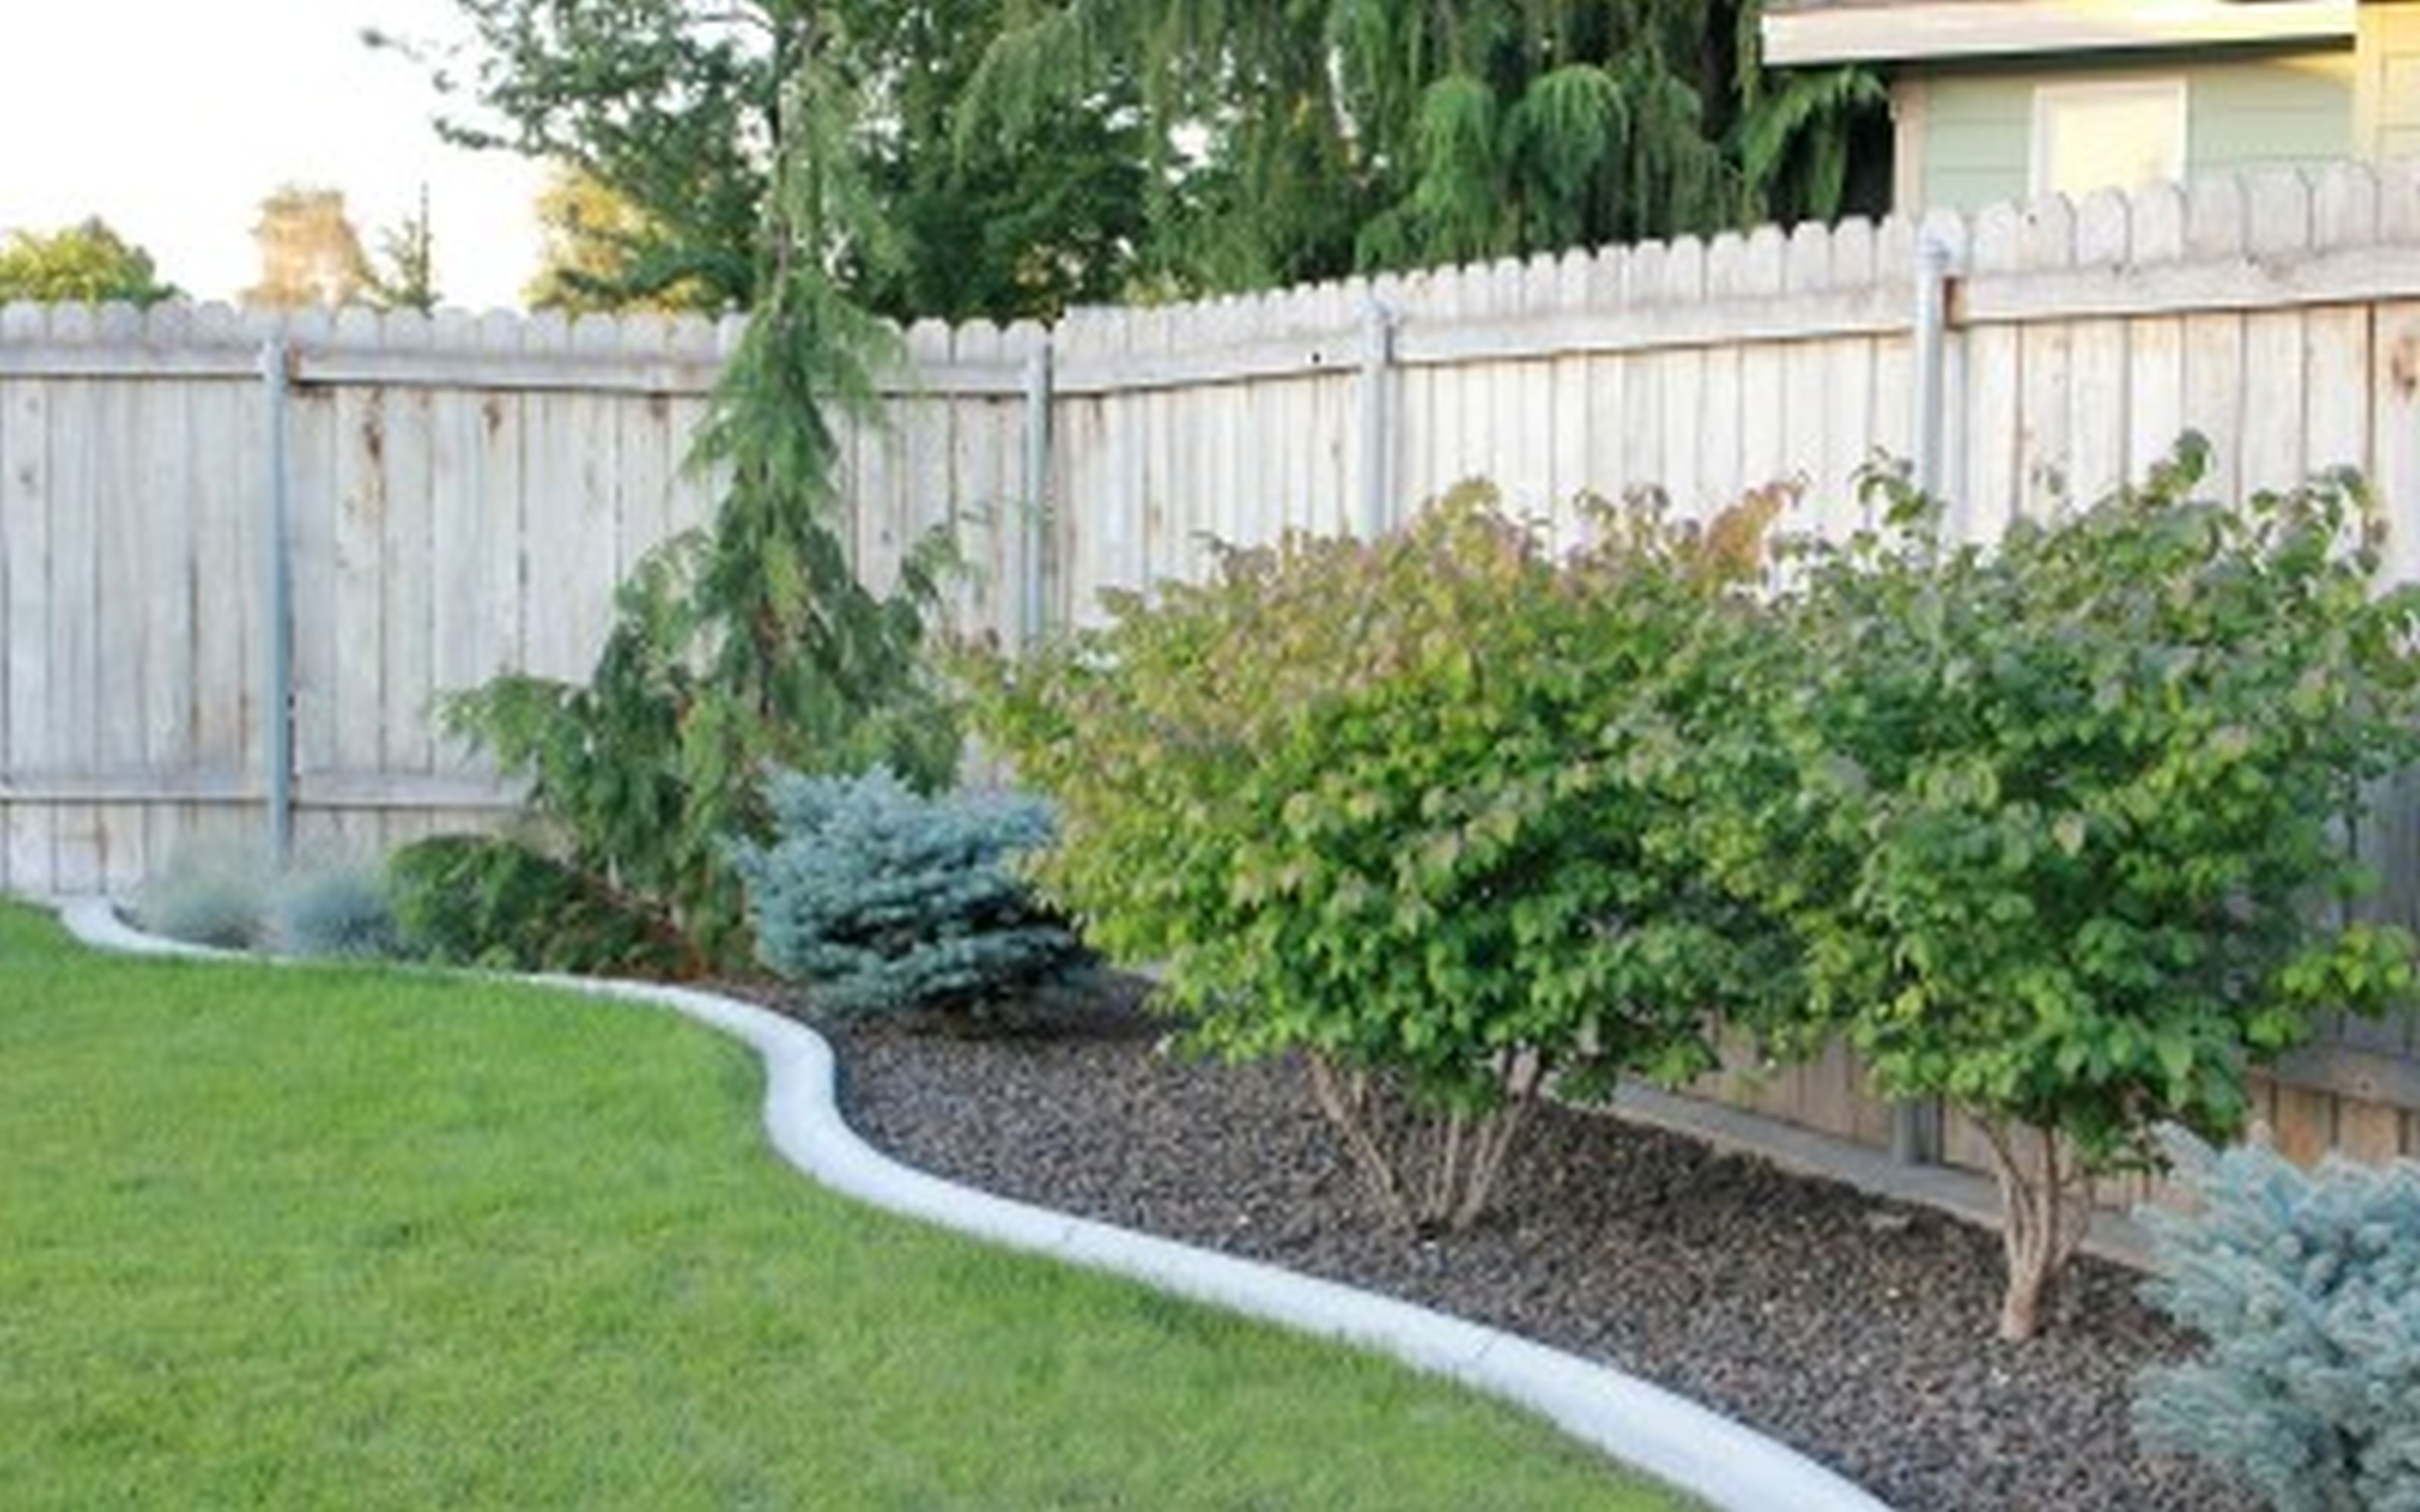 Pacific Northwest Landscaping Ideas Green House within Northwest Backyard Landscaping Ideas